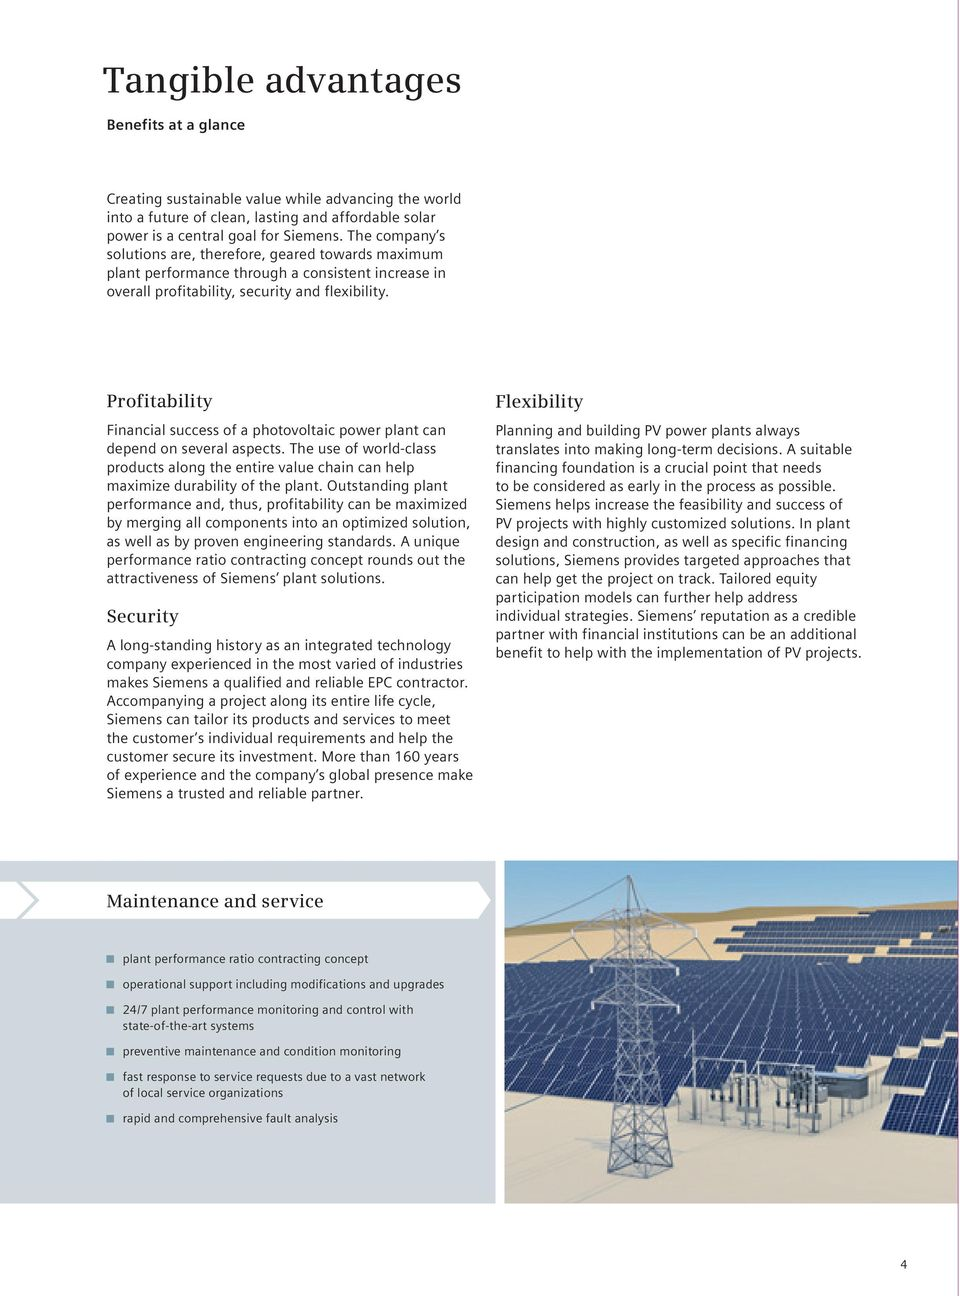 Profitability Financial success of a photovoltaic power plant can depend on several aspects. The use of world-class products along the entire value chain can help maximize durability of the plant.